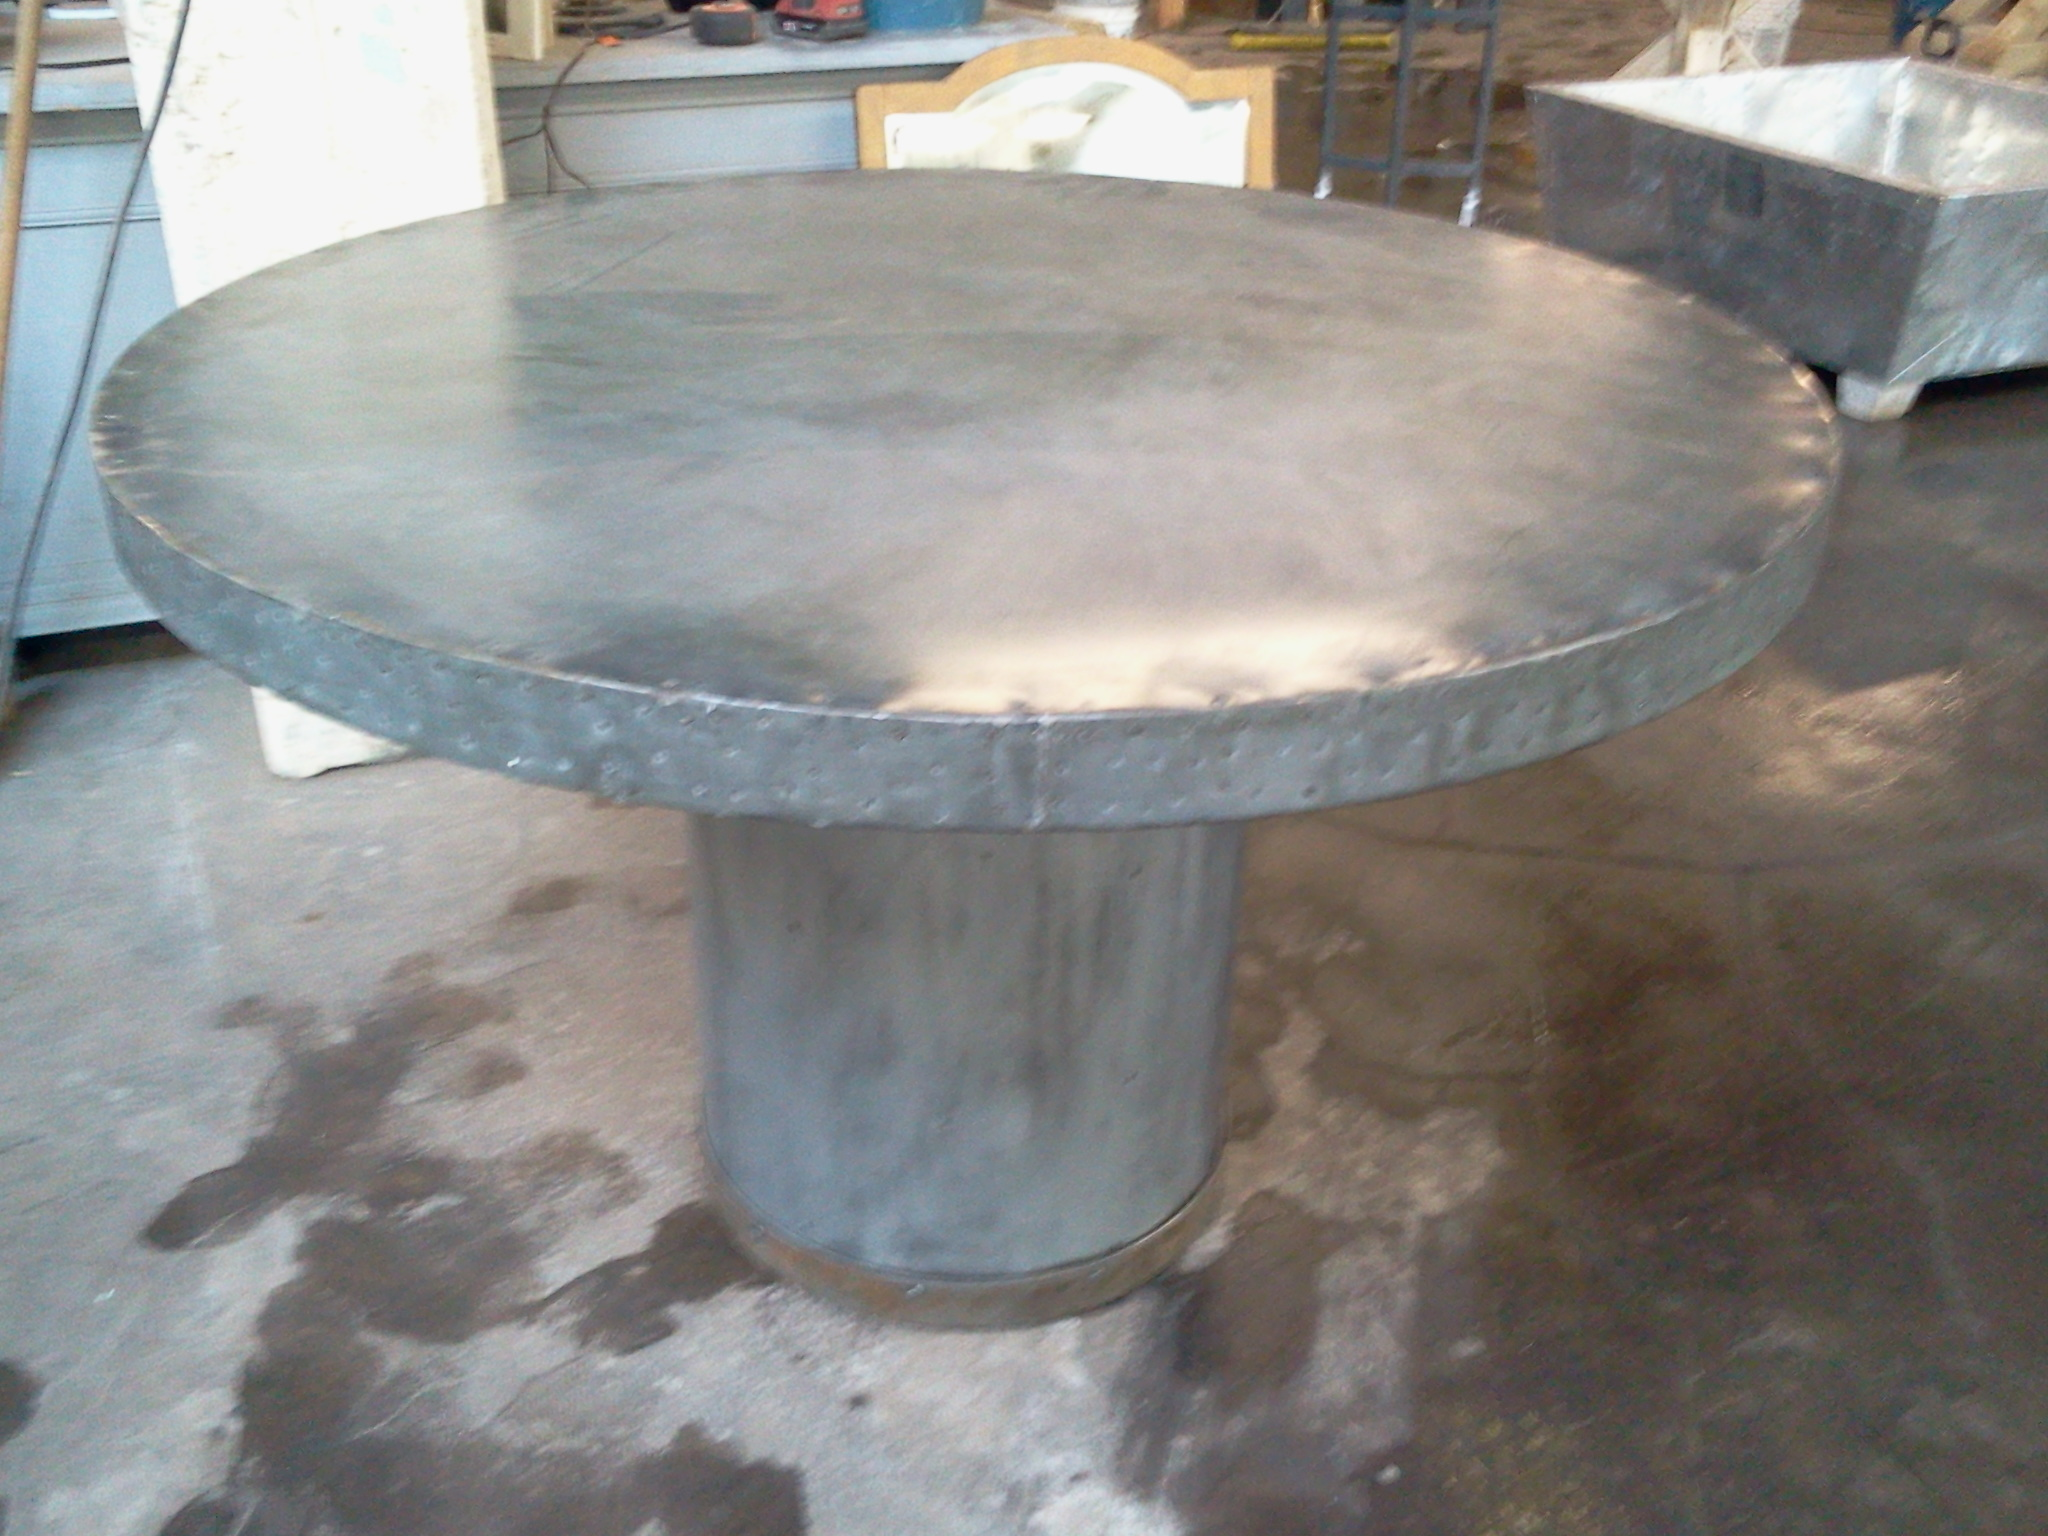 Zinc Clad Round Table Artisan Style Soldered Top. 2012 12 02 14.46.27